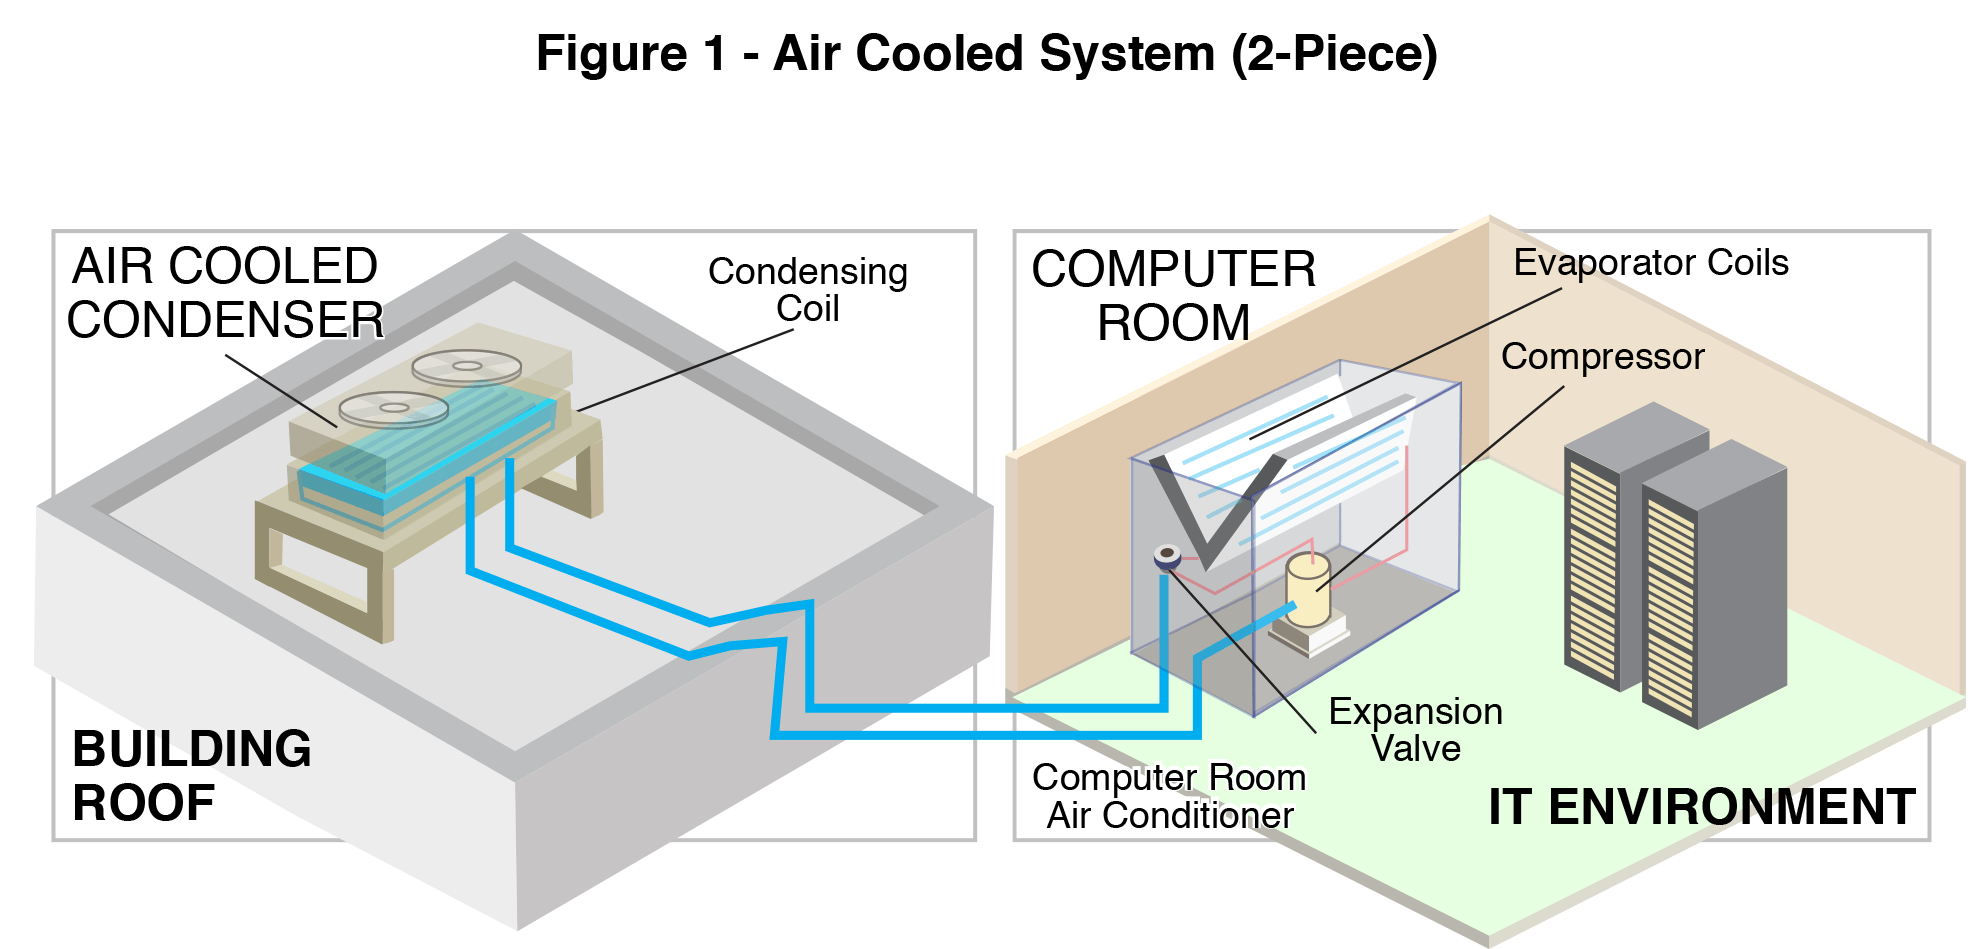 Two Piece Air Cooled Systems